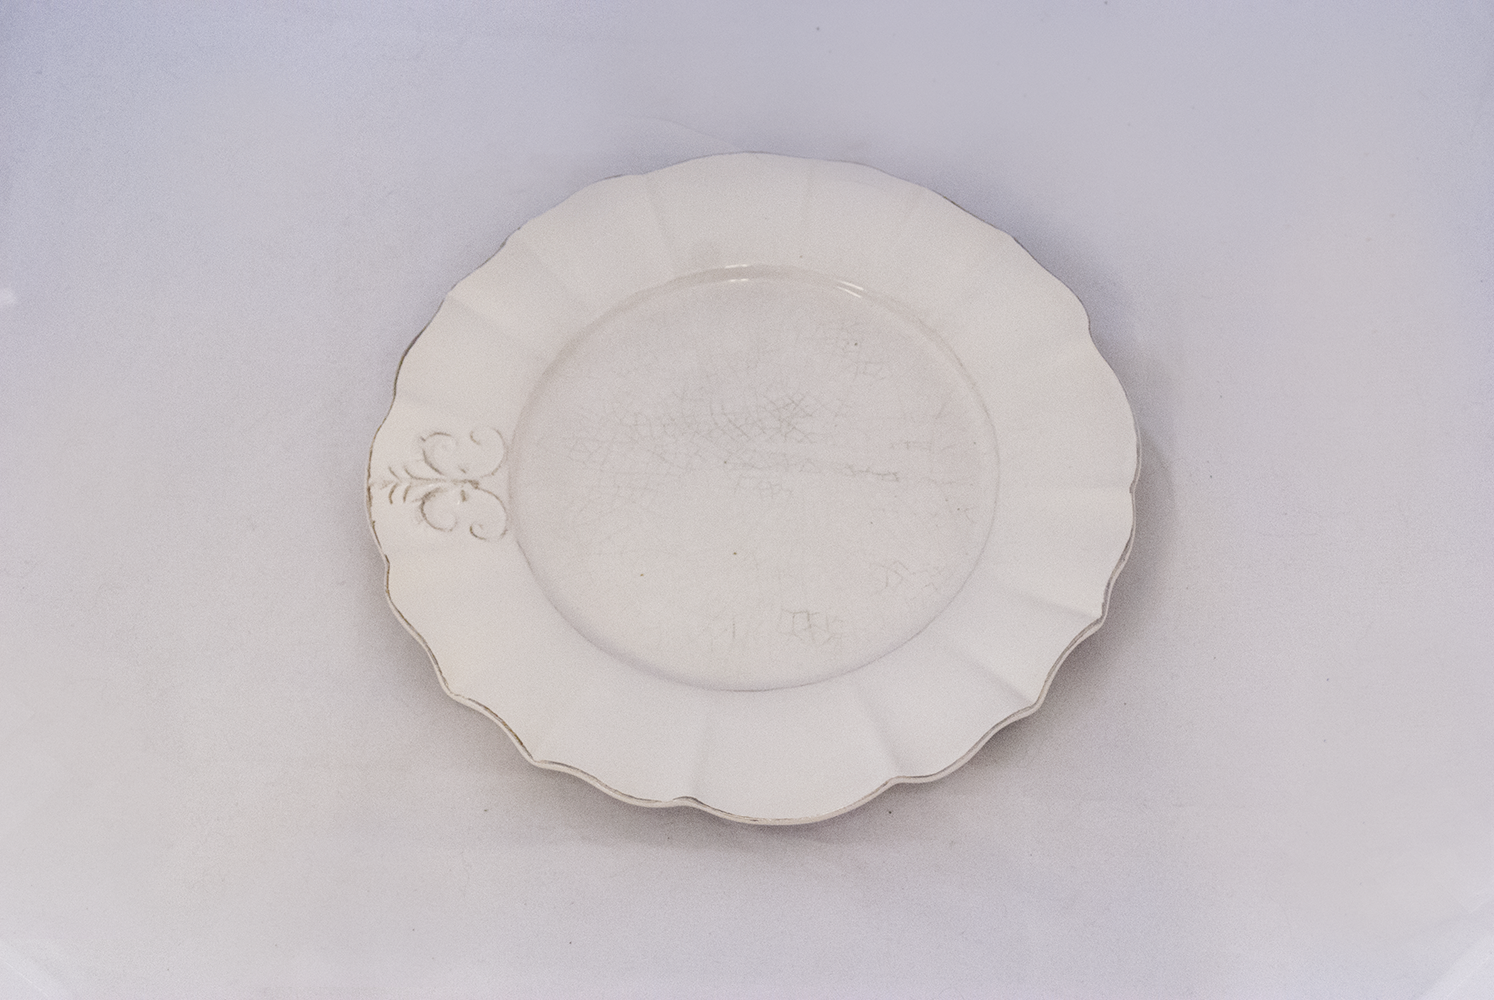 WHITe porcelain charger   Quantity: 150  Price: $3.50